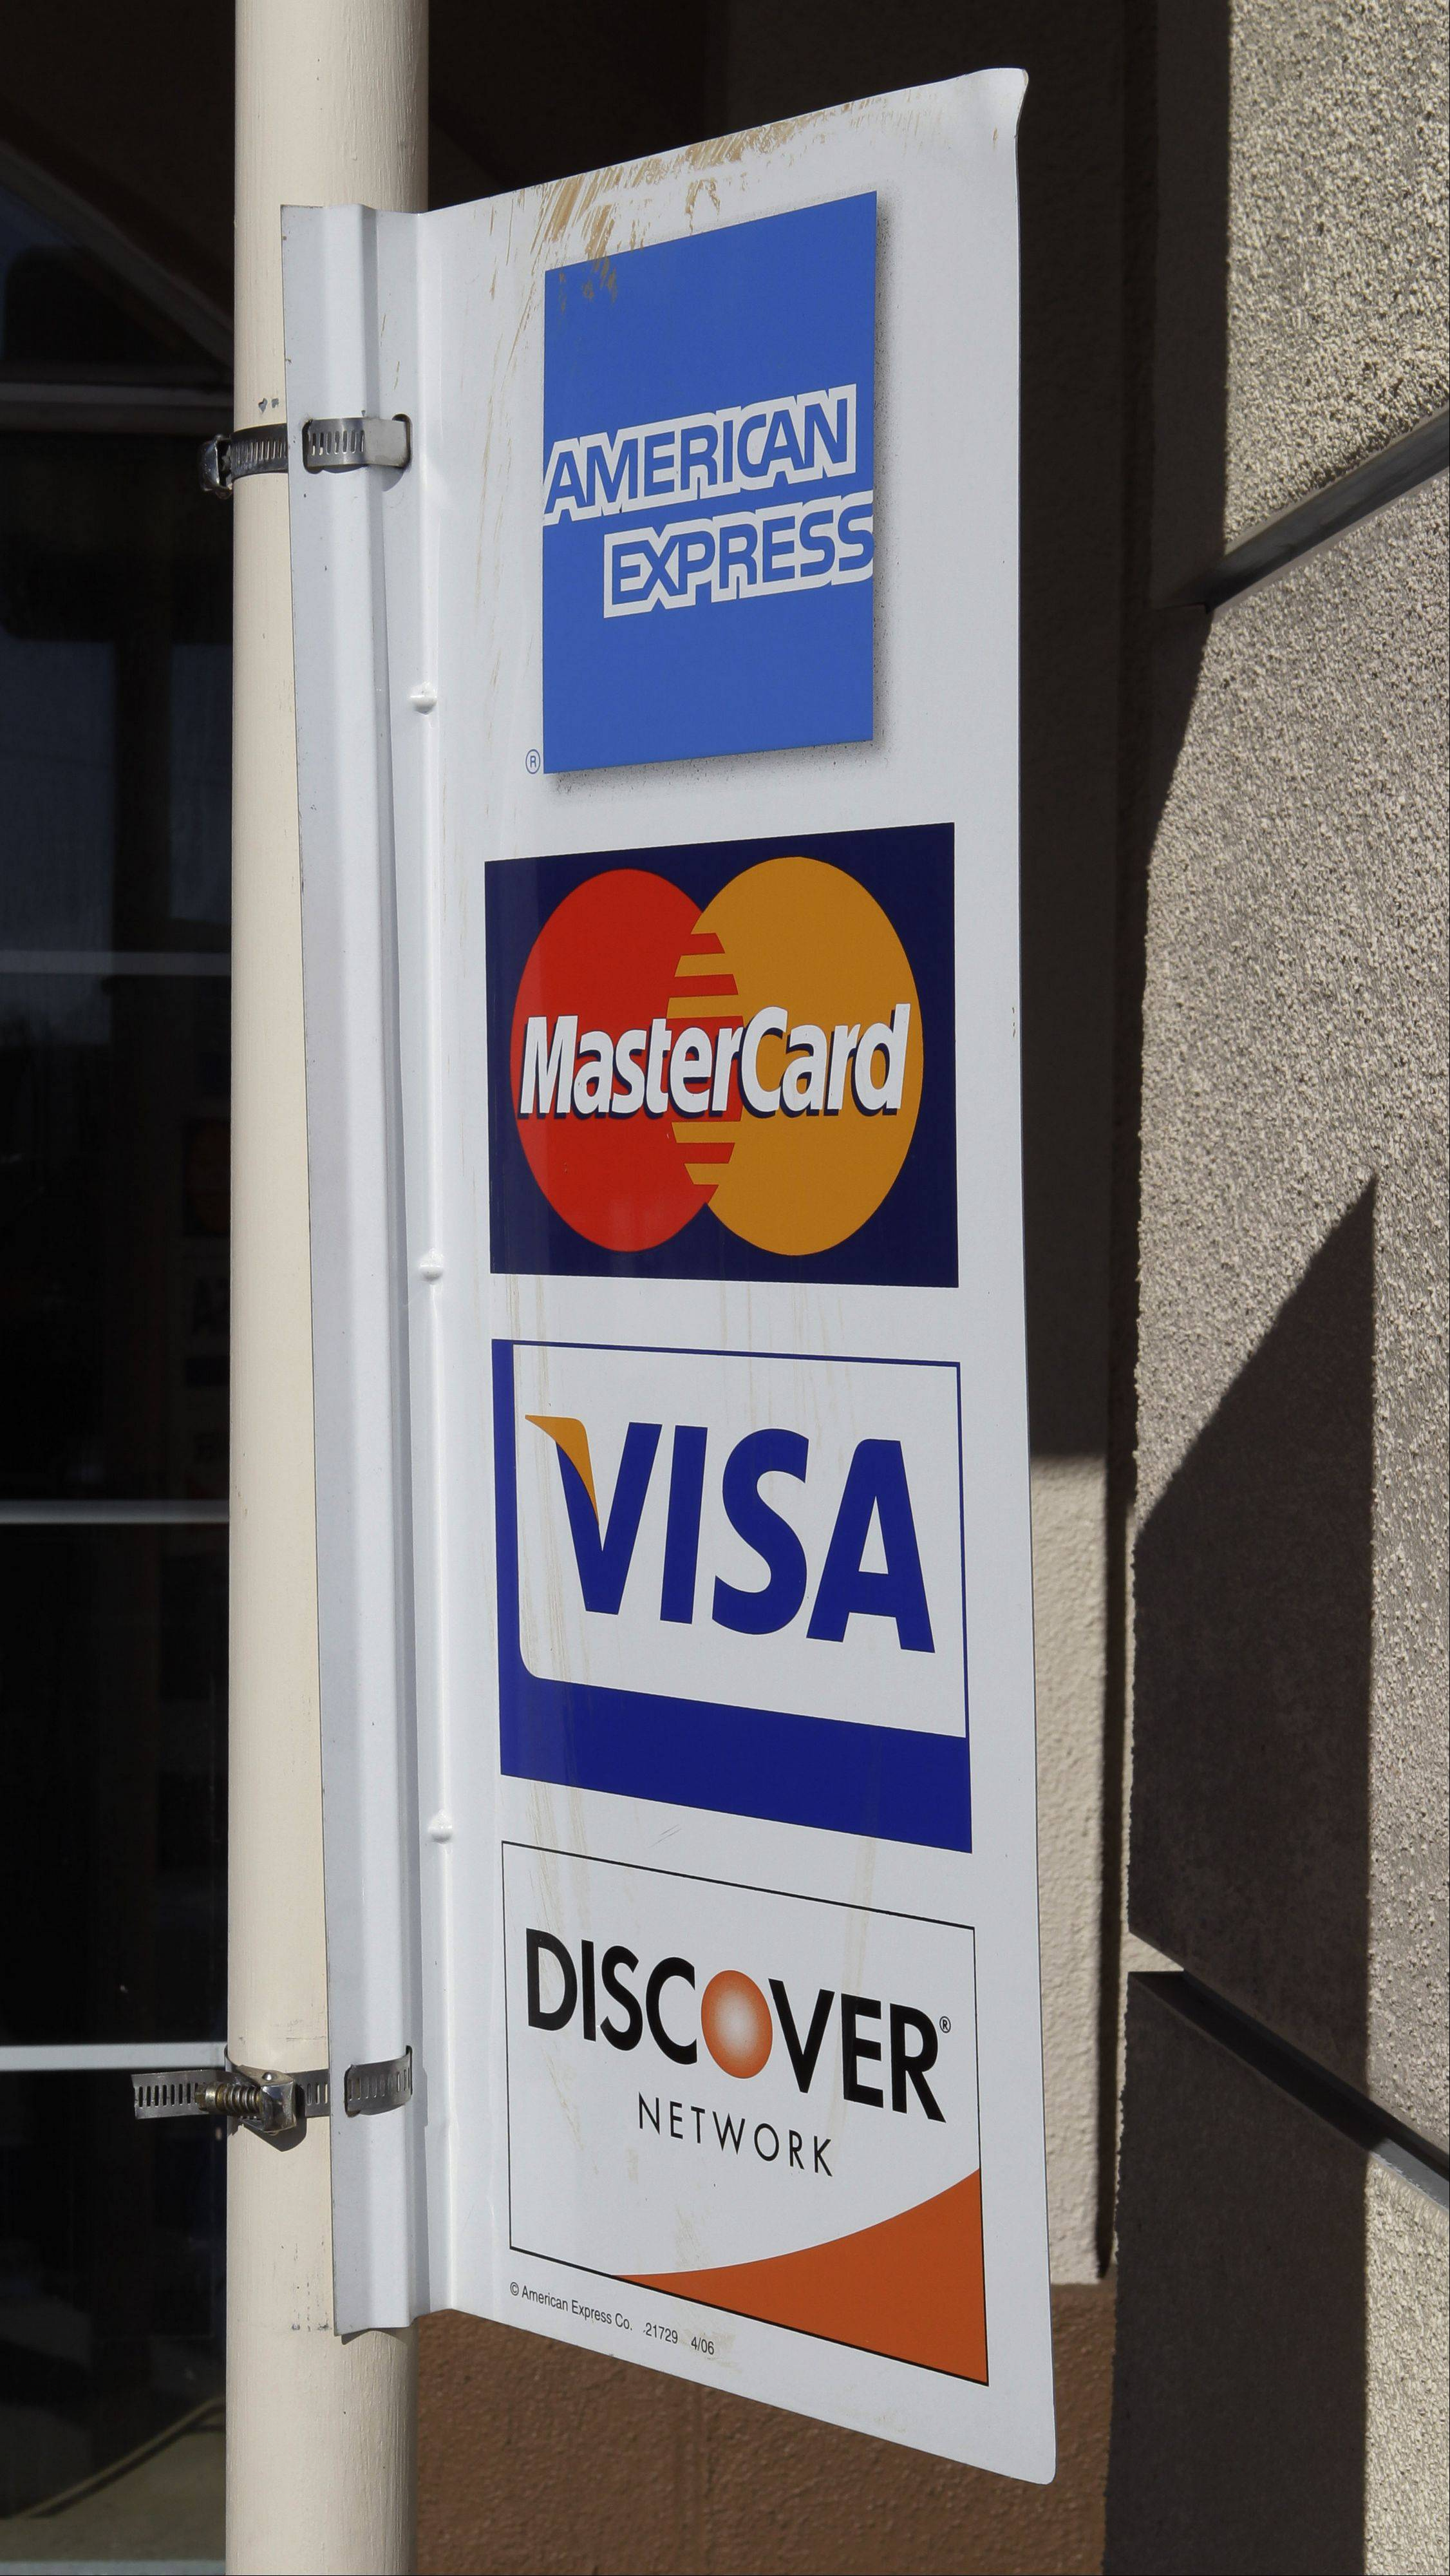 Thousands of retailers in 40 states now have the right to charge customers the fees that come along with using credit cards. They won that right as part of a settlement of a class-action lawsuit brought by merchants against the credit card companies Visa and MasterCard and major banks that issue credit cards.